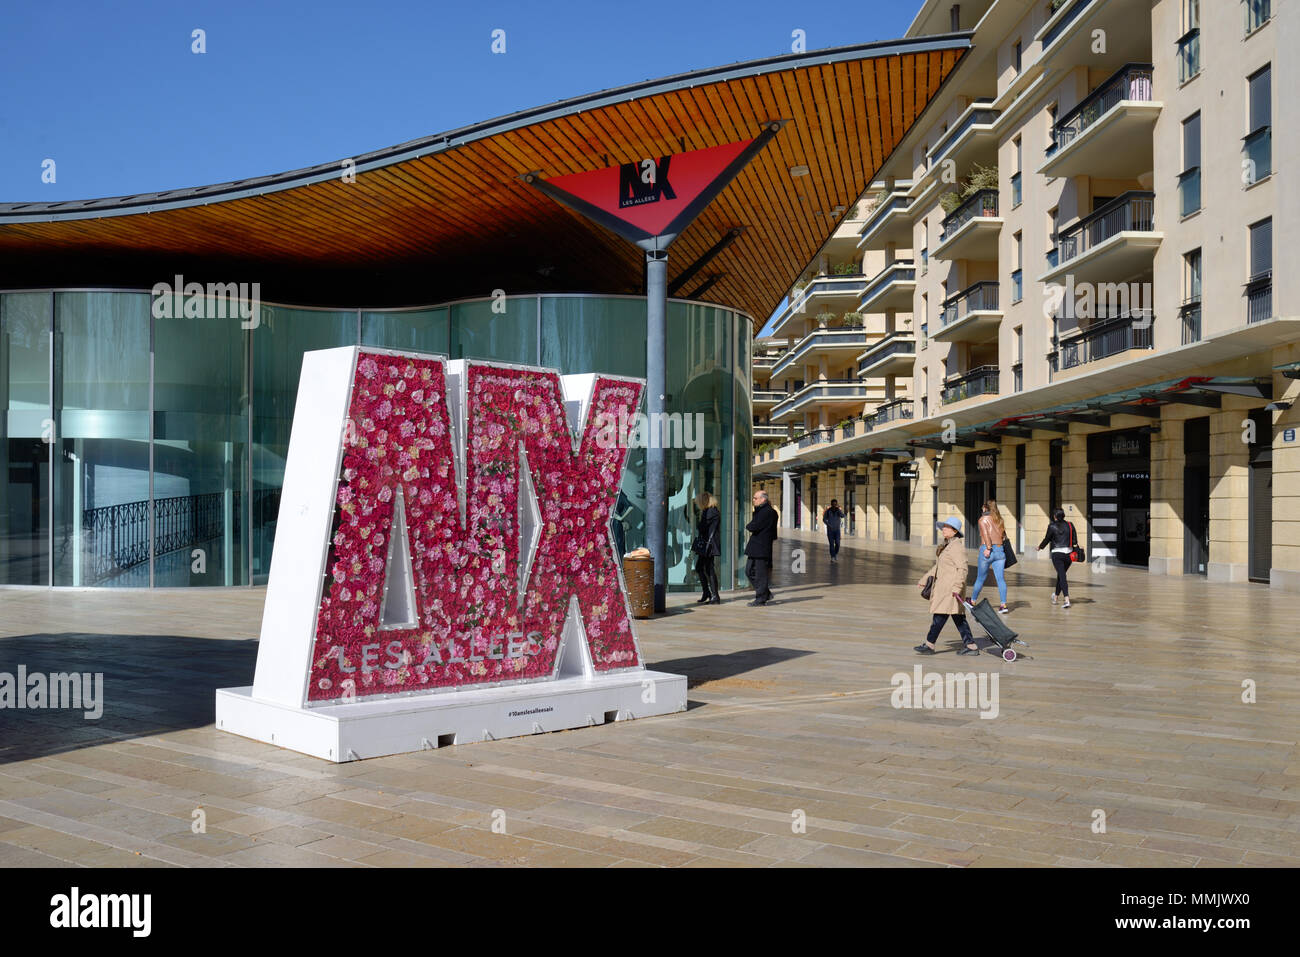 Sign for 'Aix' Made of Paper or Plastic Roses in Shopping Centre or Shopping Mall Les Allées Provençales Aix-en-Provence Provence France - Stock Image